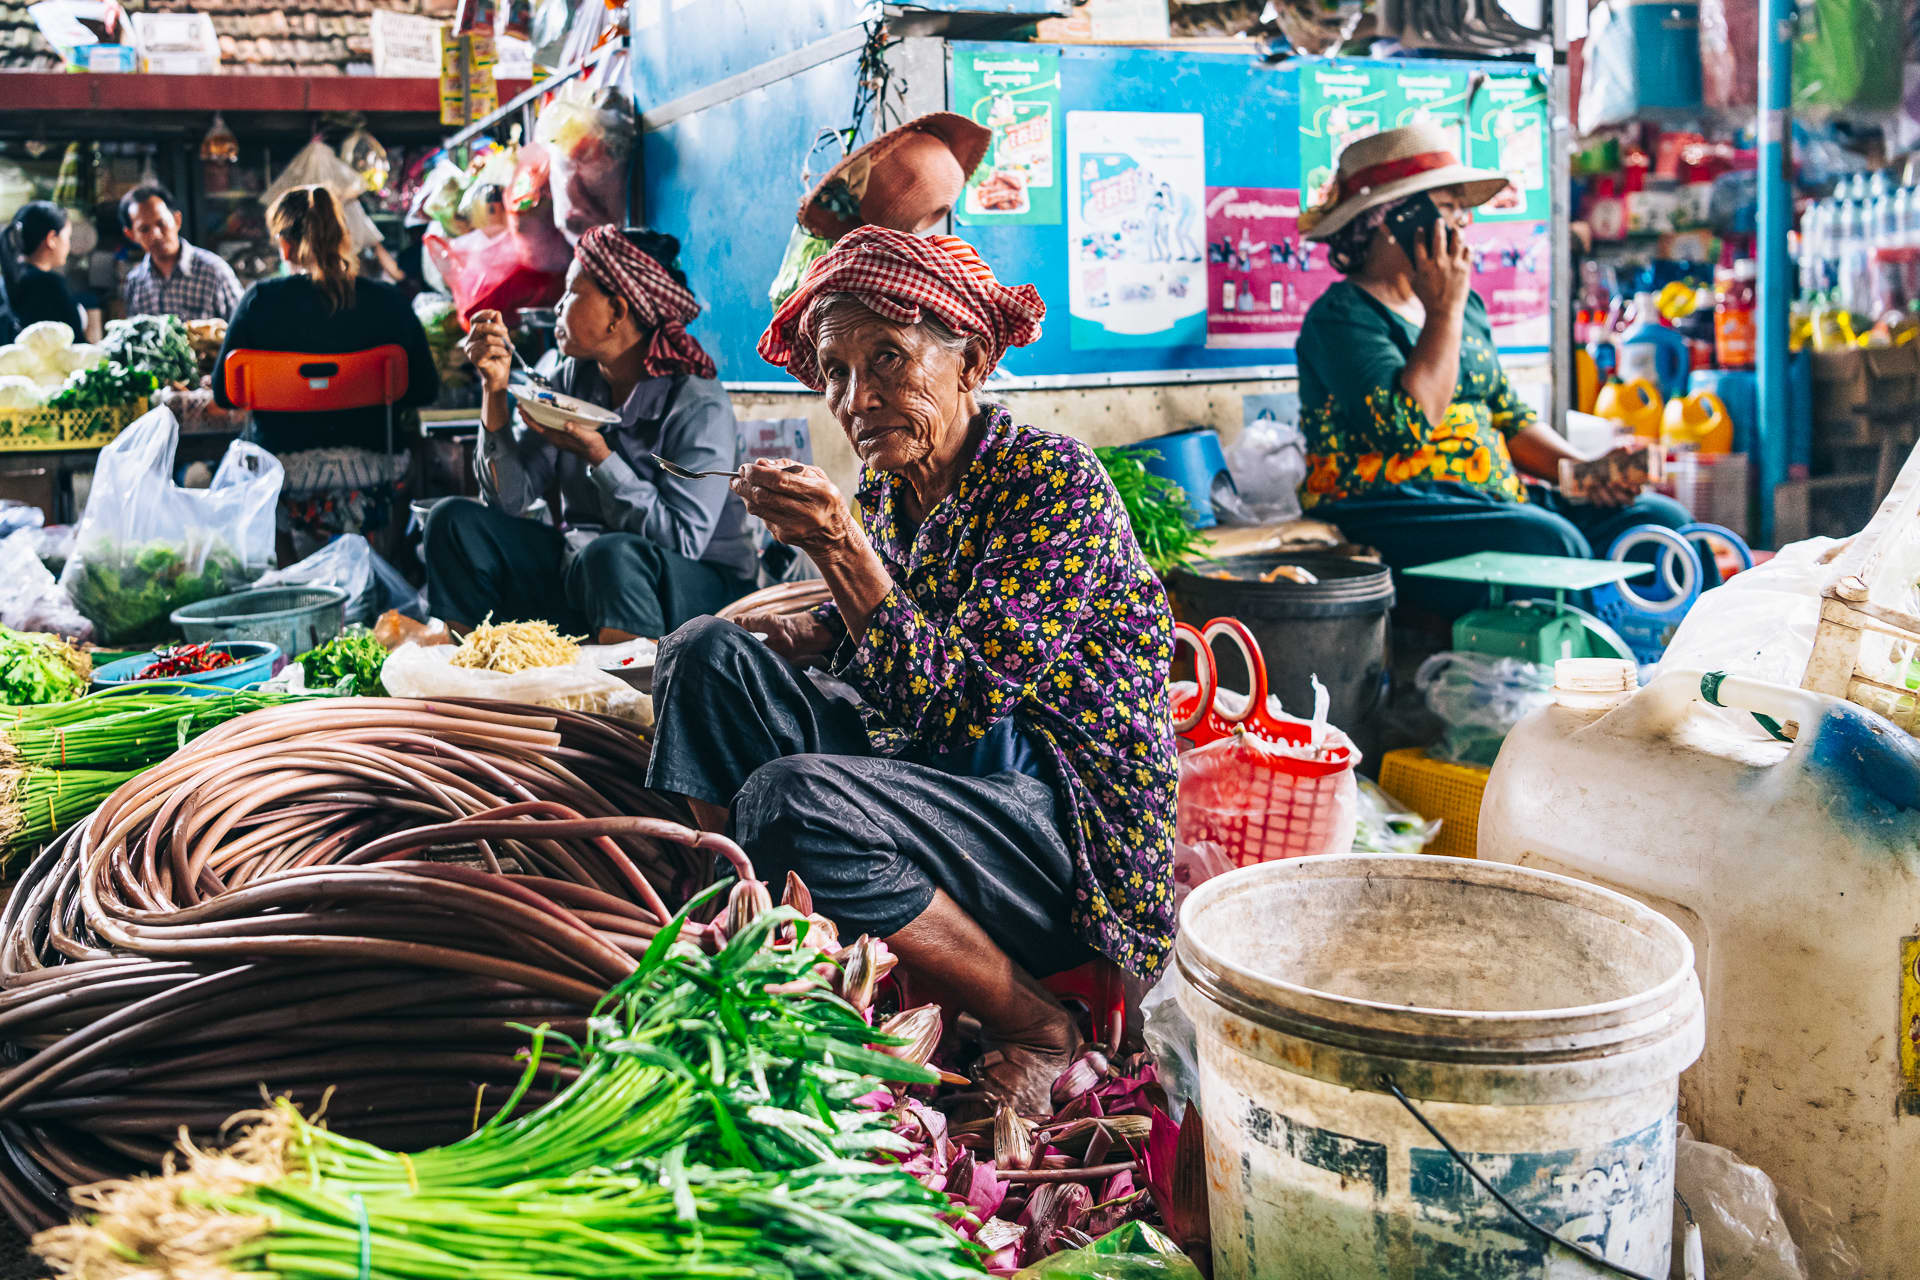 A woman enjoys her breakfast while selling fresh produce at the Kampot market.